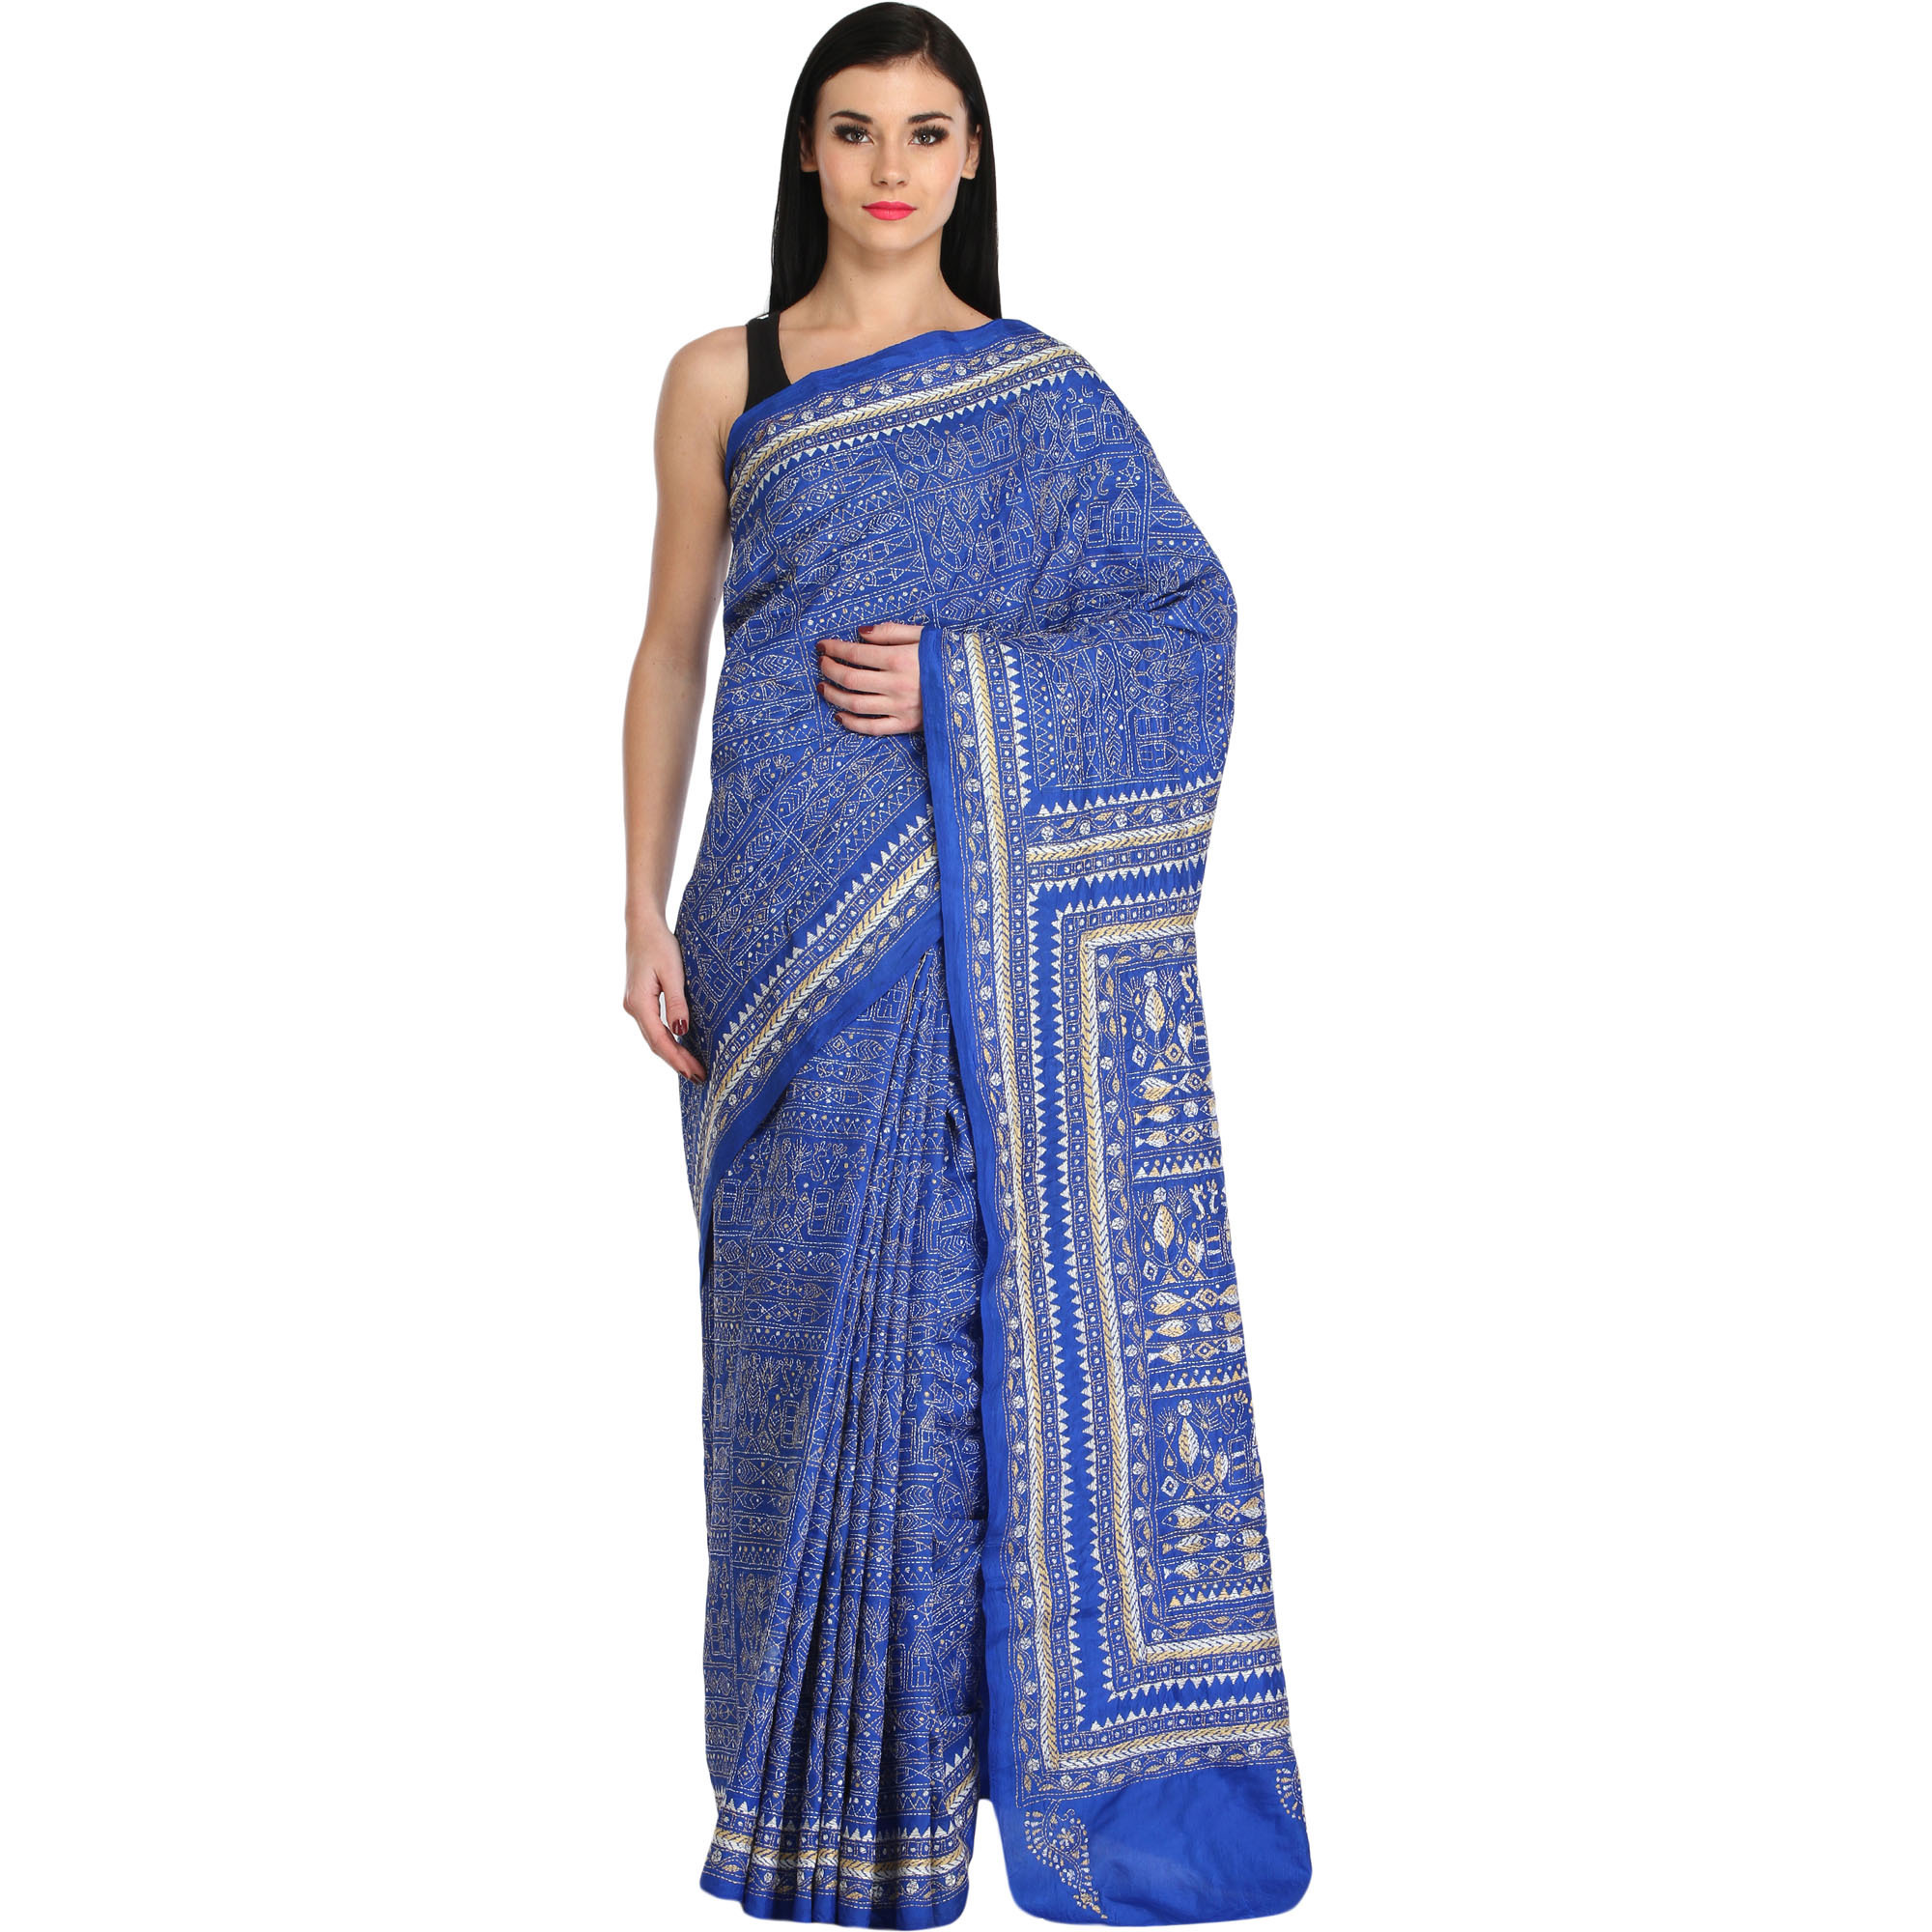 Strong-Blue Warli Sari from Kolkata with Dense Kantha-Embroidery by Hand